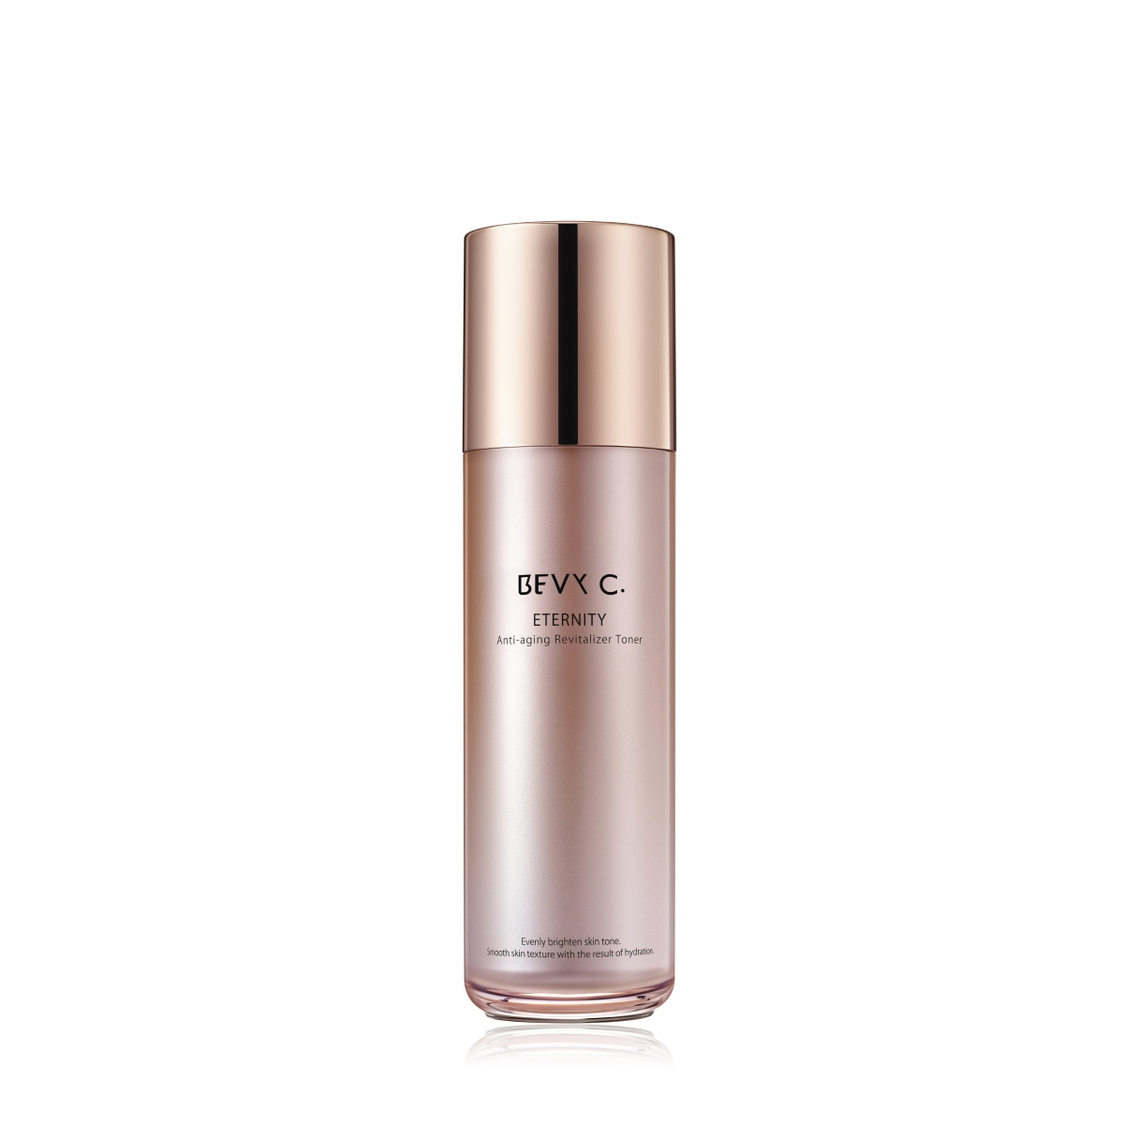 Eternity Anti-Aging Revitalizer Toner